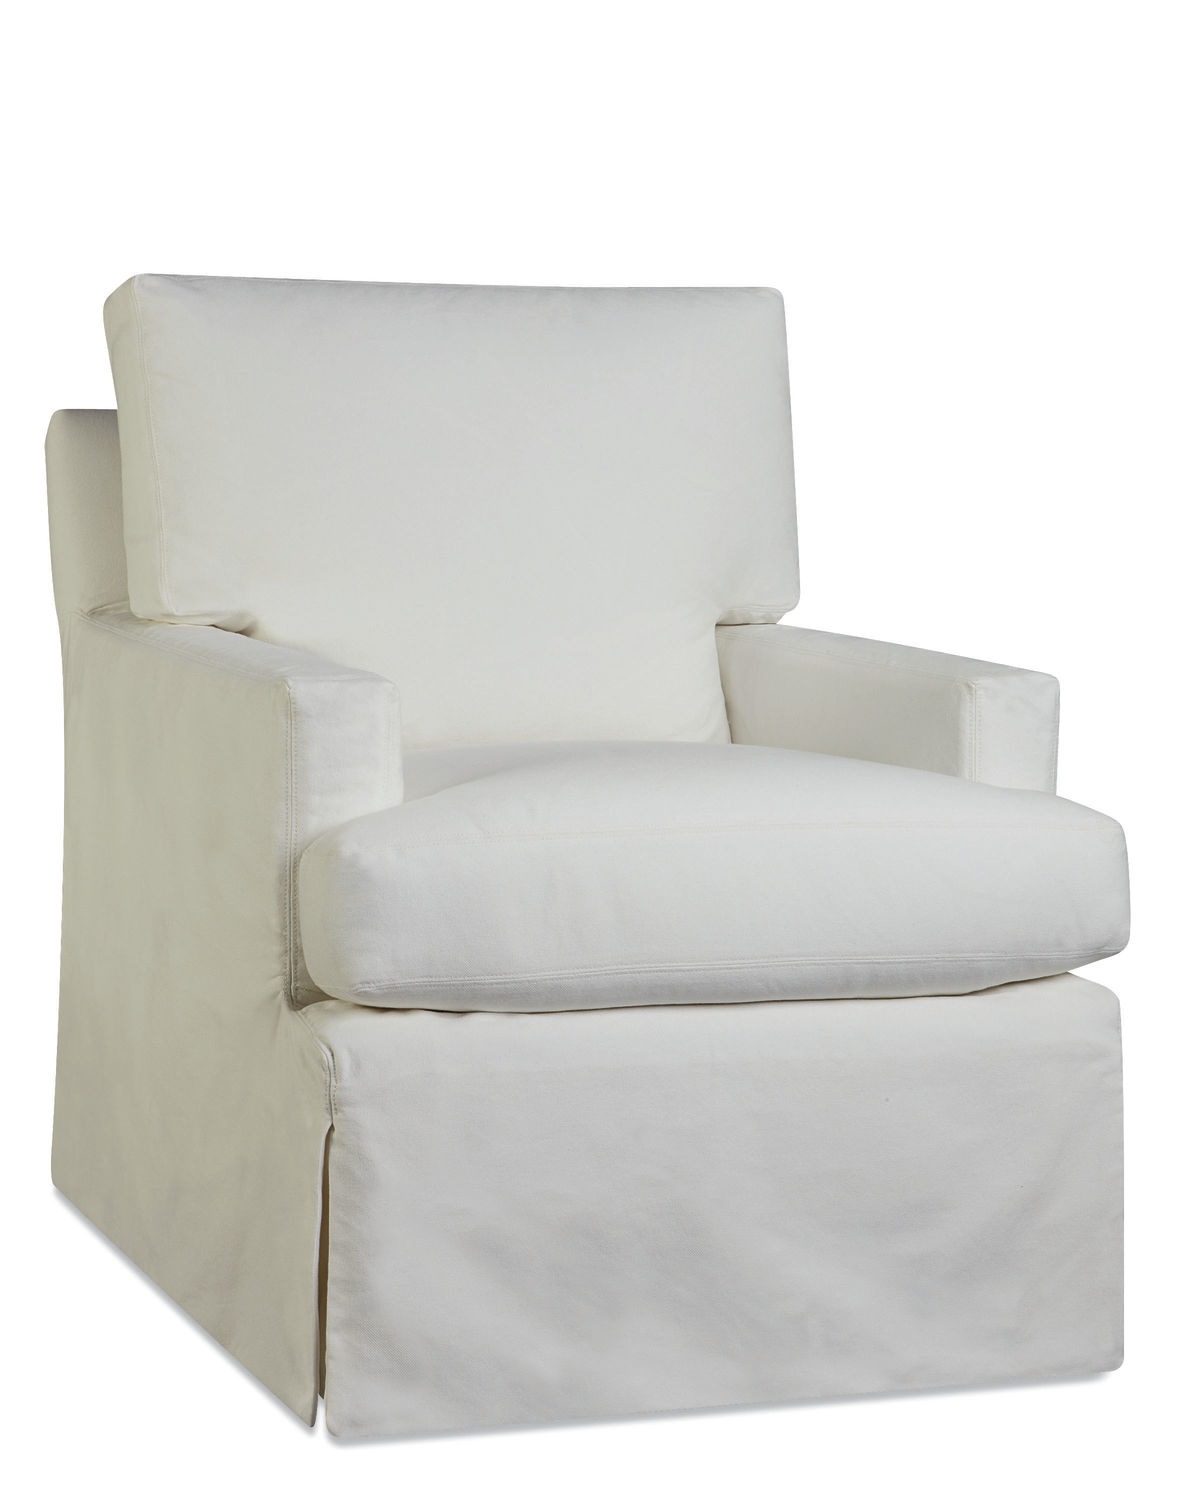 swivel chair covers picture of upholstered slipcover peach tree designs